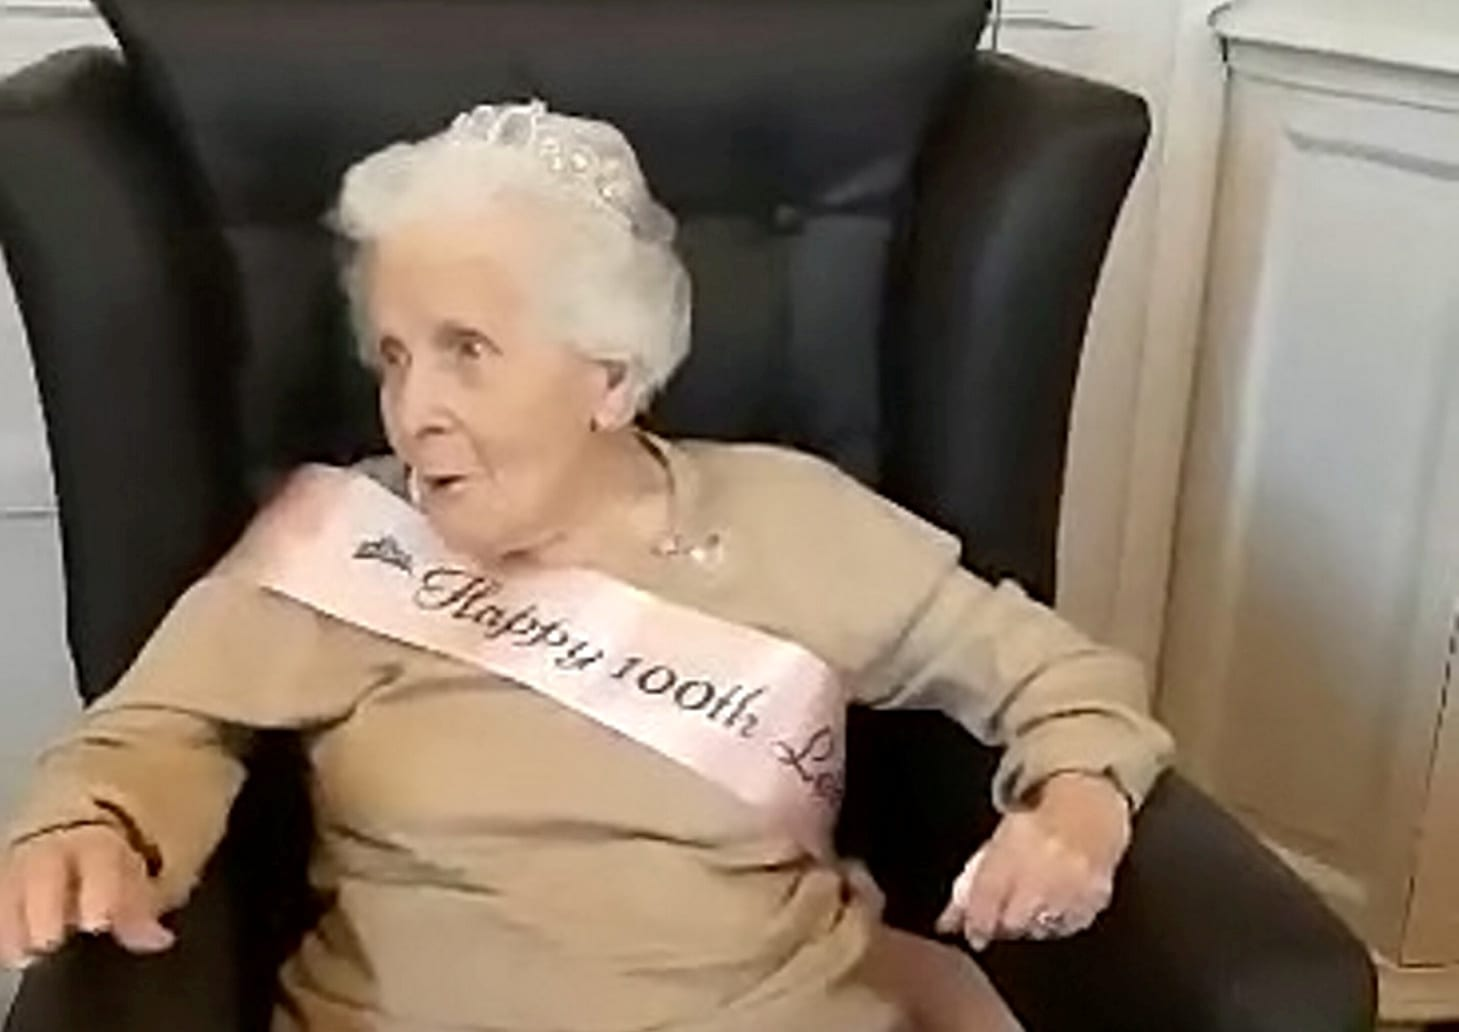 Great-Gran Celebrated Her 100th Birthday By Belting Out A Dazzling Rendition Of 'When You're Smiling'